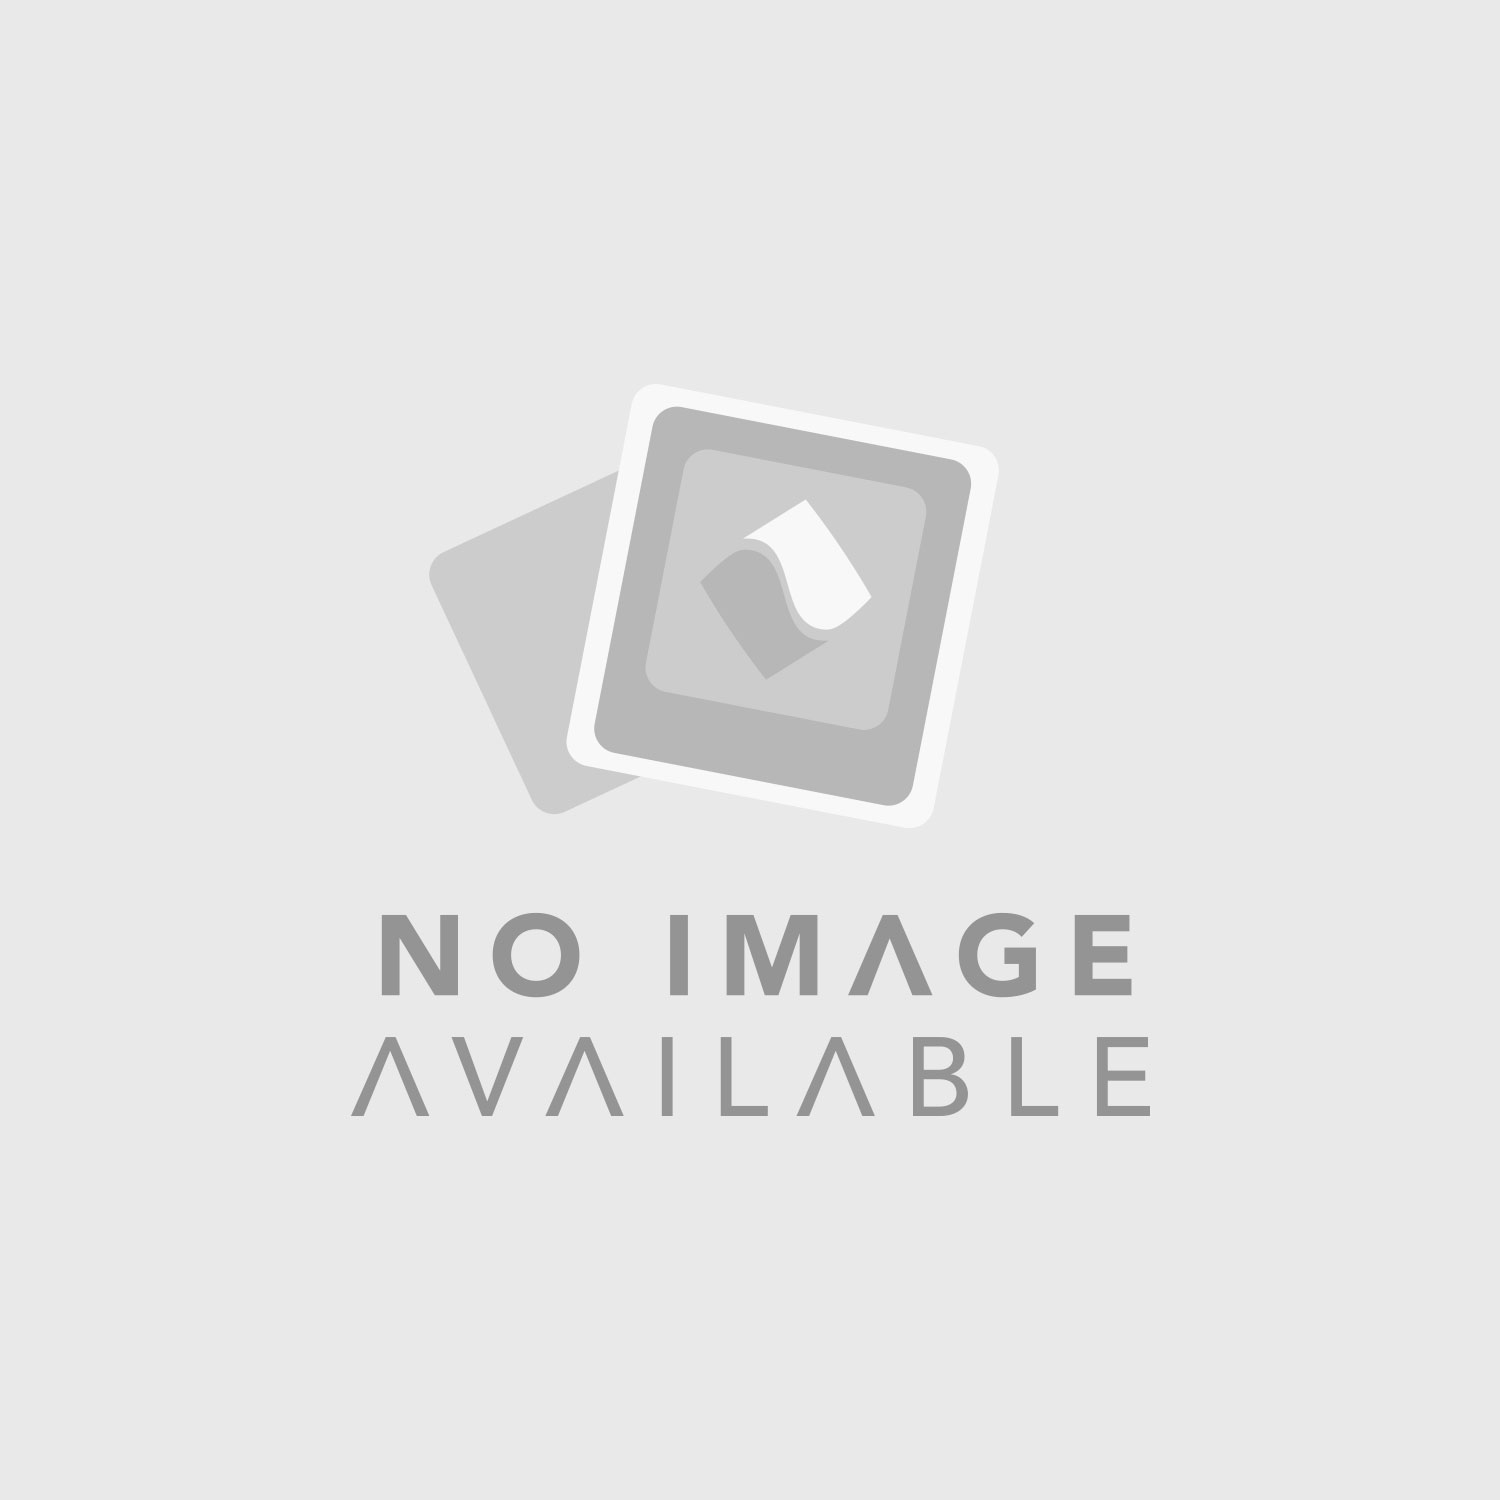 Schoeps M 100 C Mini Stereo Mounting Bar